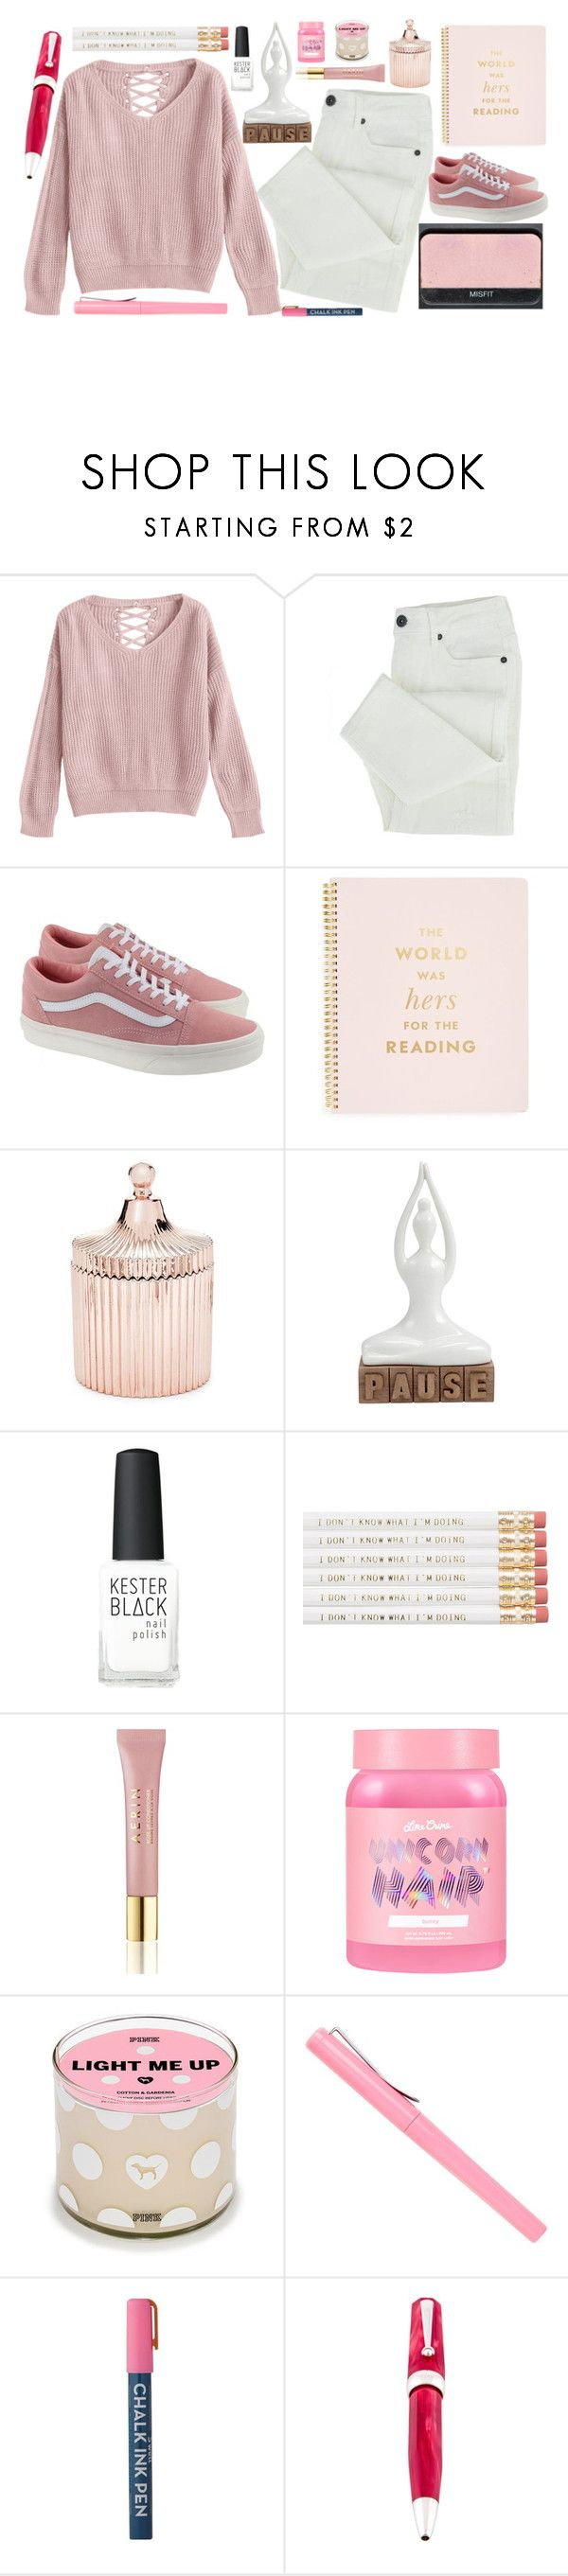 """""""xxiv. ITS OUR PROBLEM FREE PHILOSOPHY HAKUNA MATATA"""" by not-an-apology ❤ liked on Polyvore featuring NARS Cosmetics, Vans, Kate Spade, Saks Fifth Avenue, Kester Black, AERIN, Lime Crime and Montegrappa"""